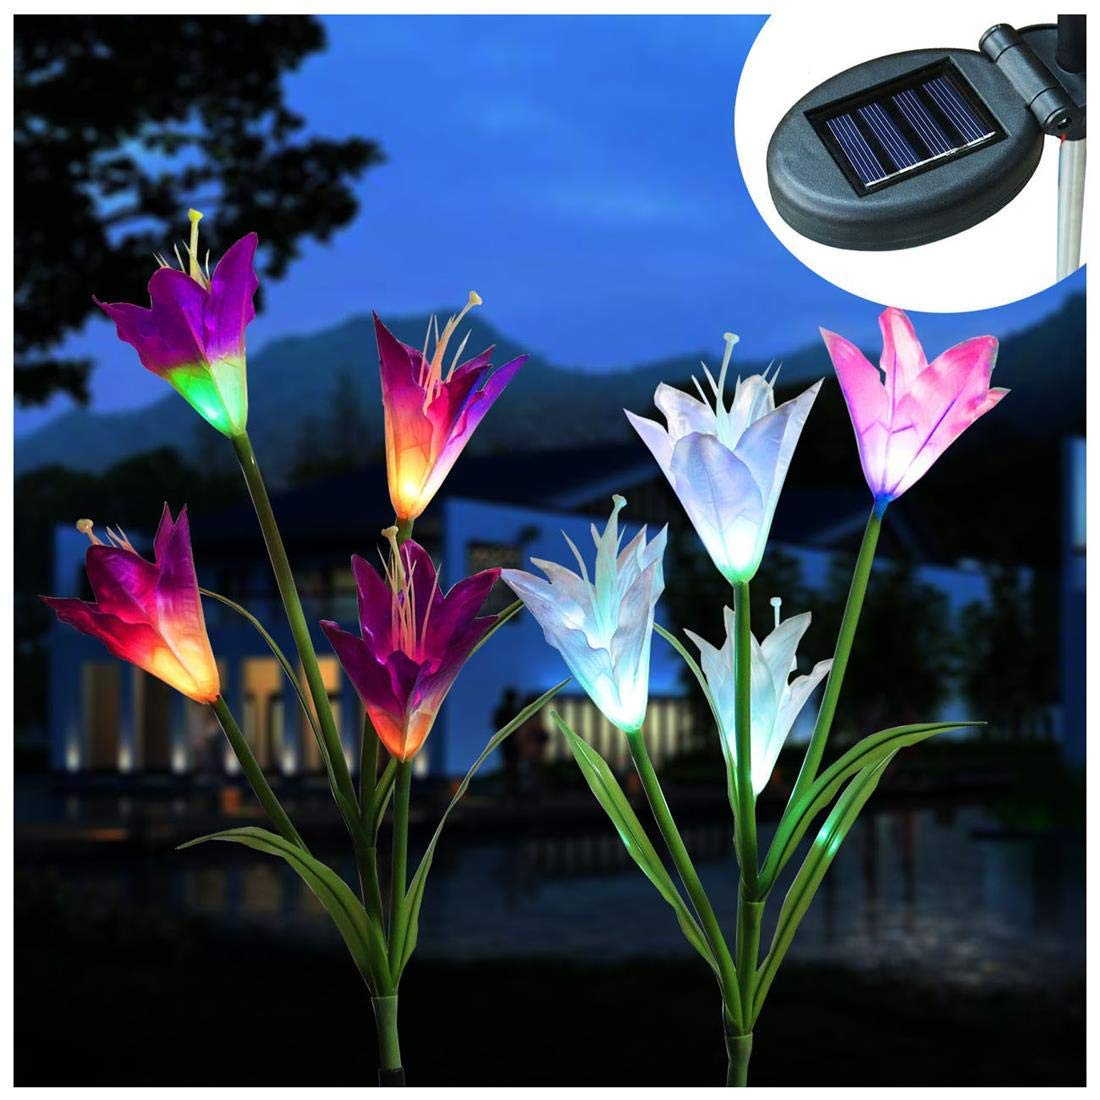 Outdoors Solar Garden Stake Lights 2 Pack Solar Powered LED Lights with 8 Lily Flower Multi-color Changing Decorative Solar Landscape Lighting for Patio, Lawn, Yard, Pathway (Purple White)